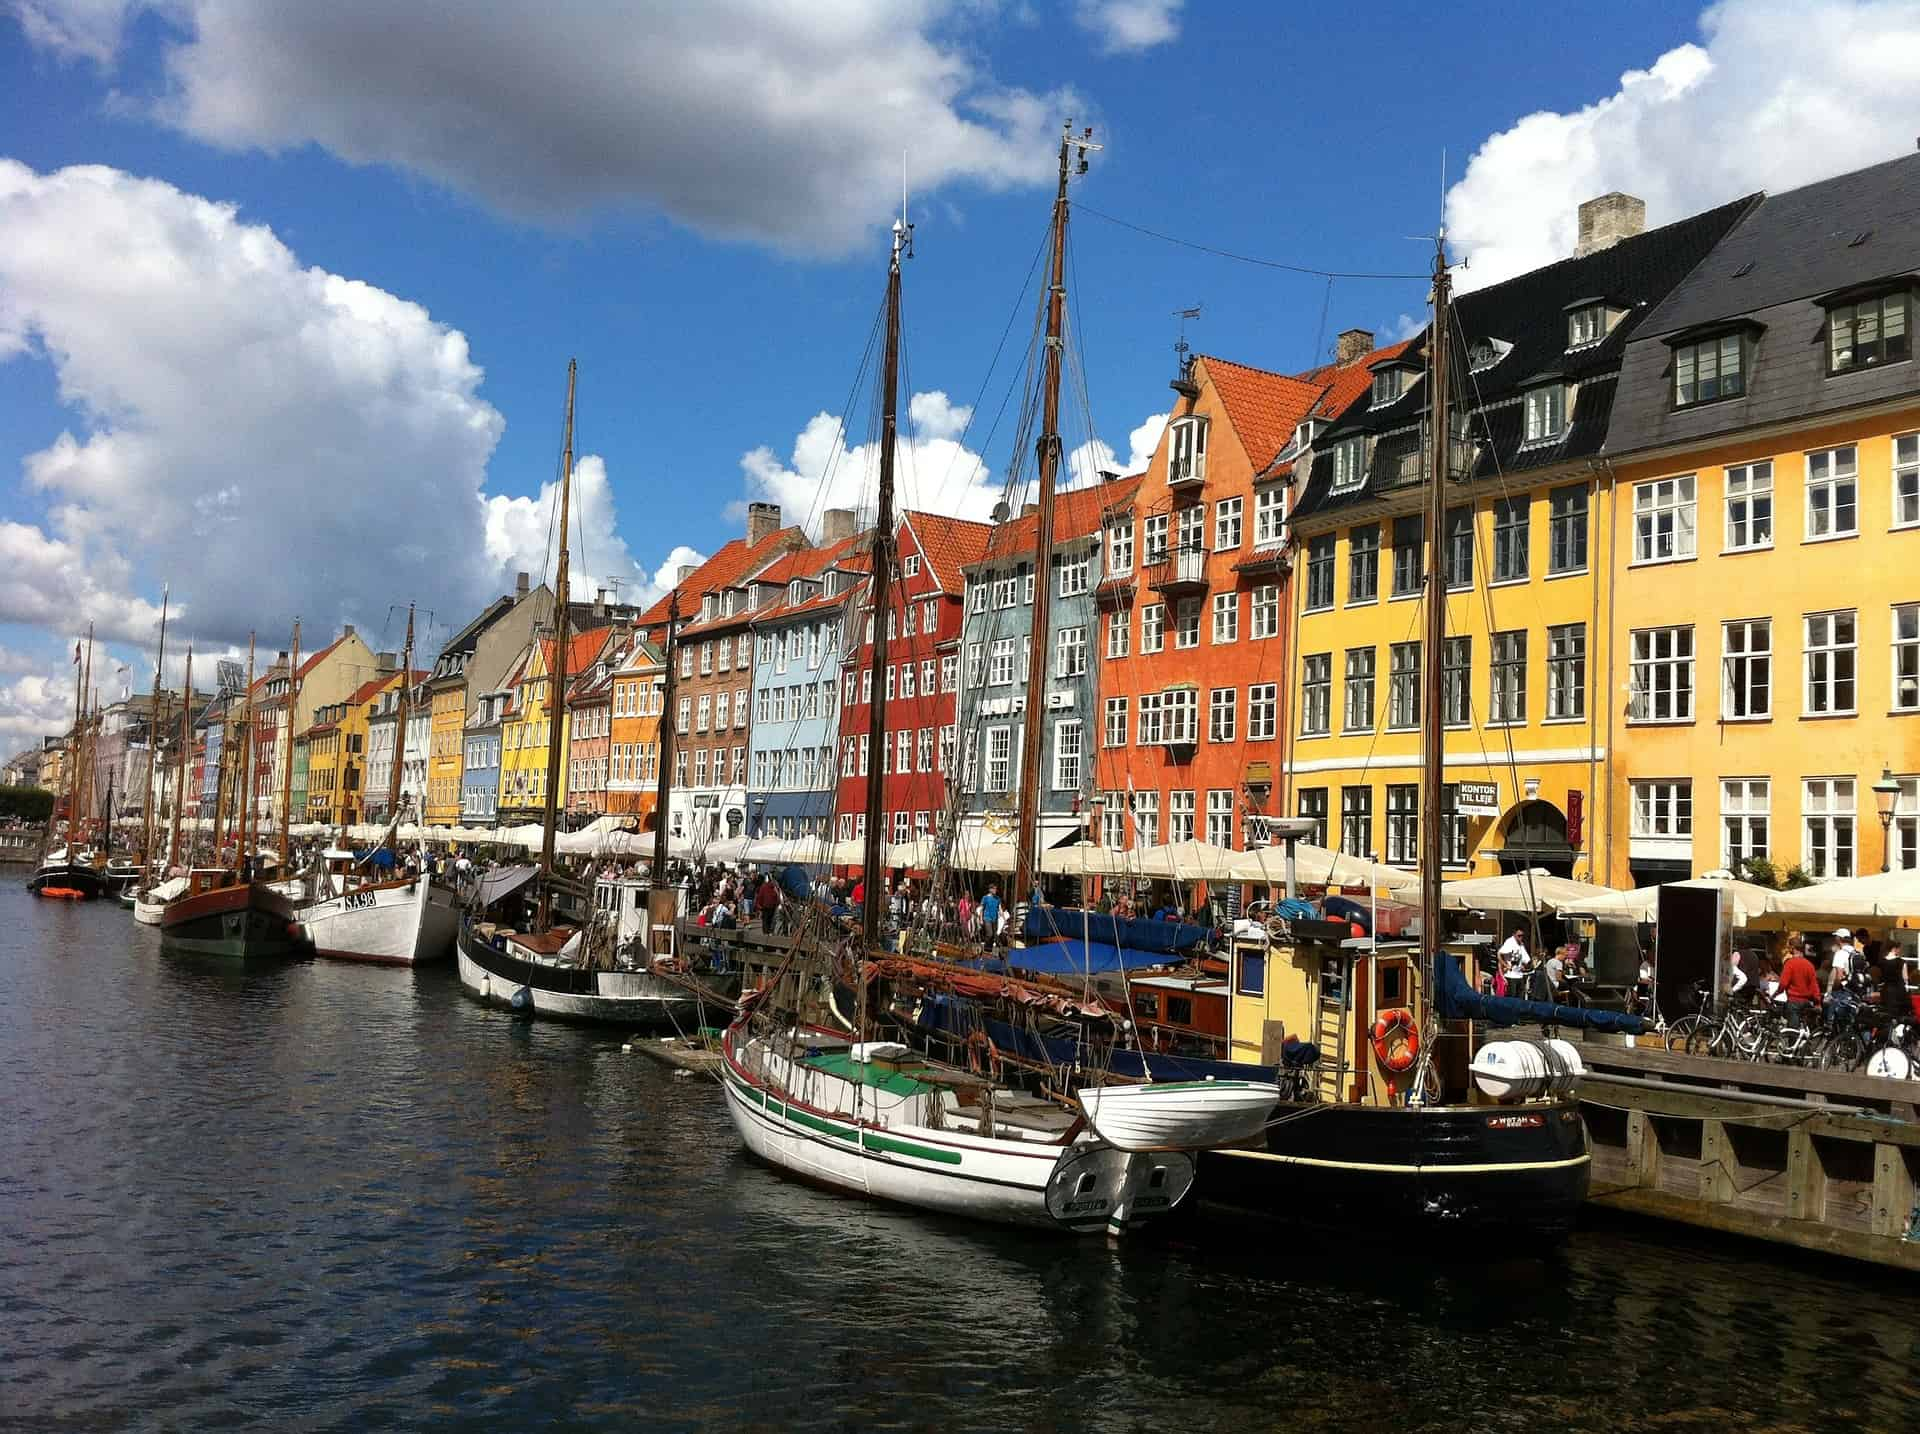 The world-famous Nyhavn in Copenhagen was dug in the 17th century as a channel that connected Copenhagen to the sea.